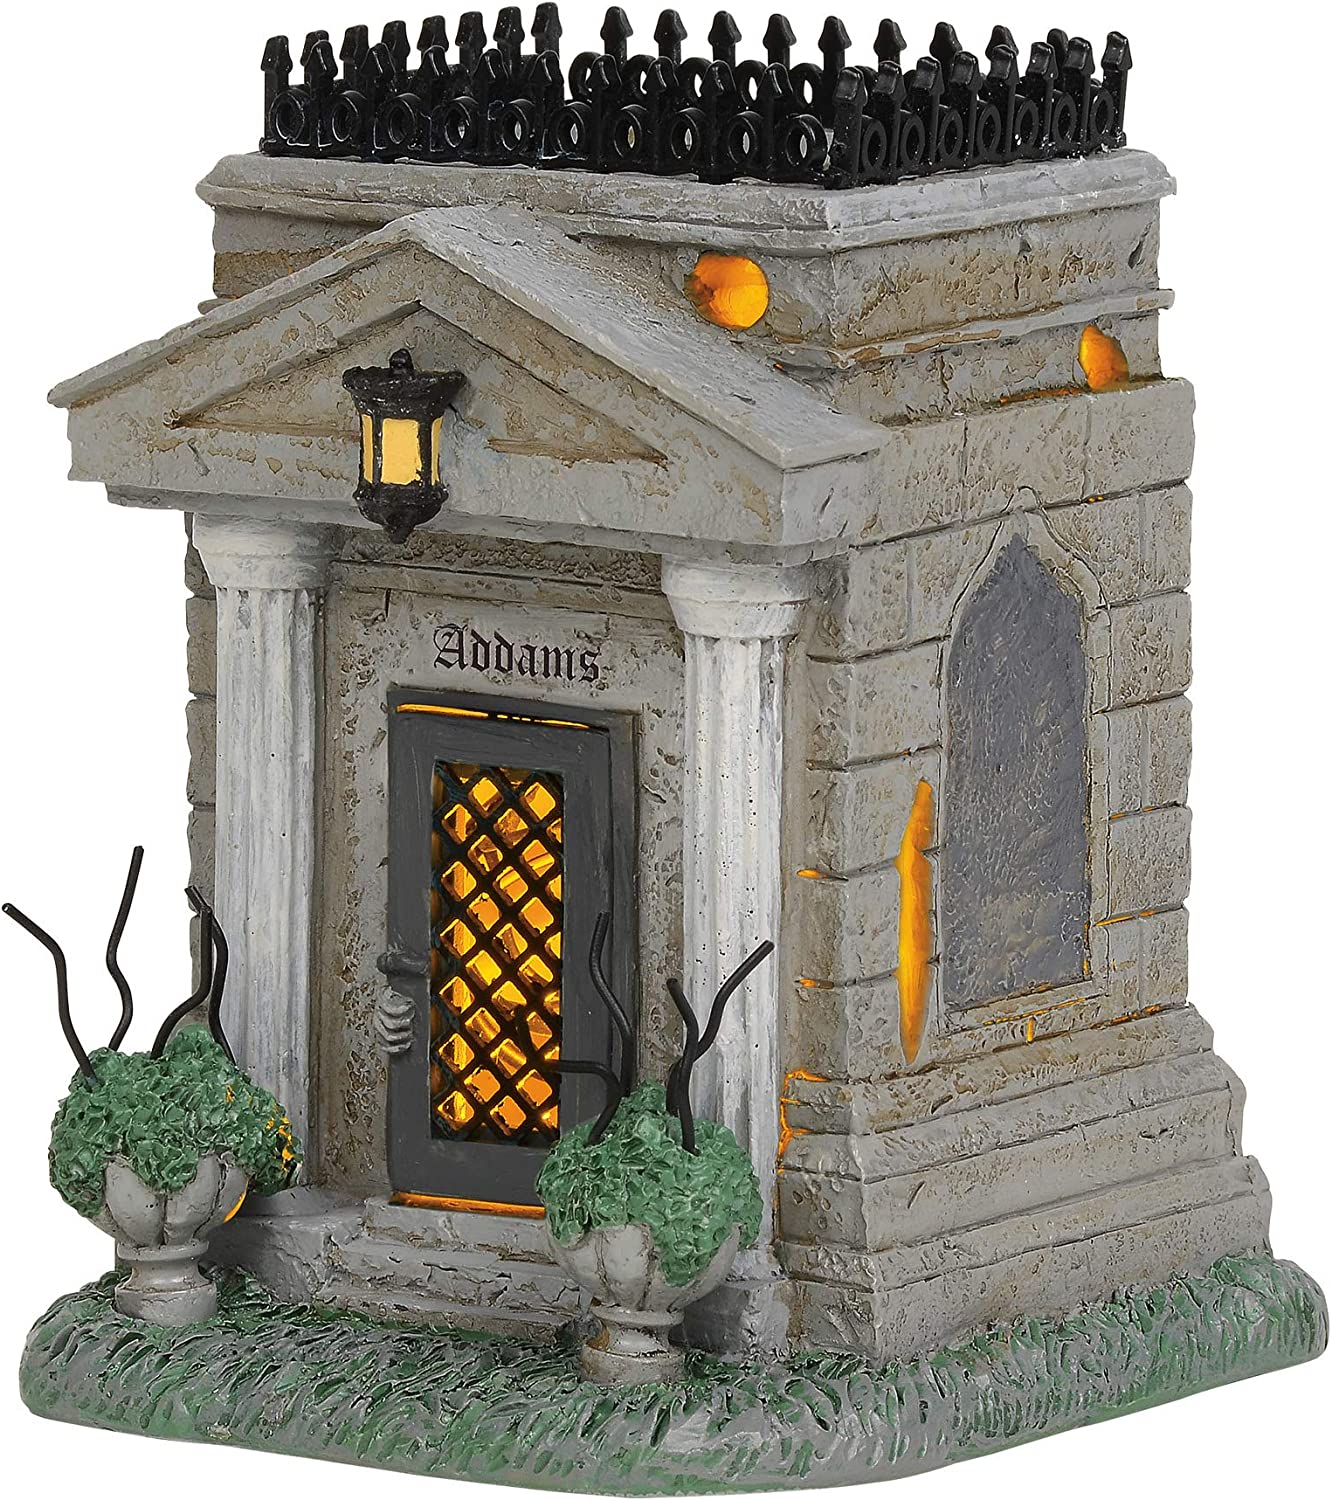 Department 56 The Addams Family Village Accessories Crypt Lit Fi